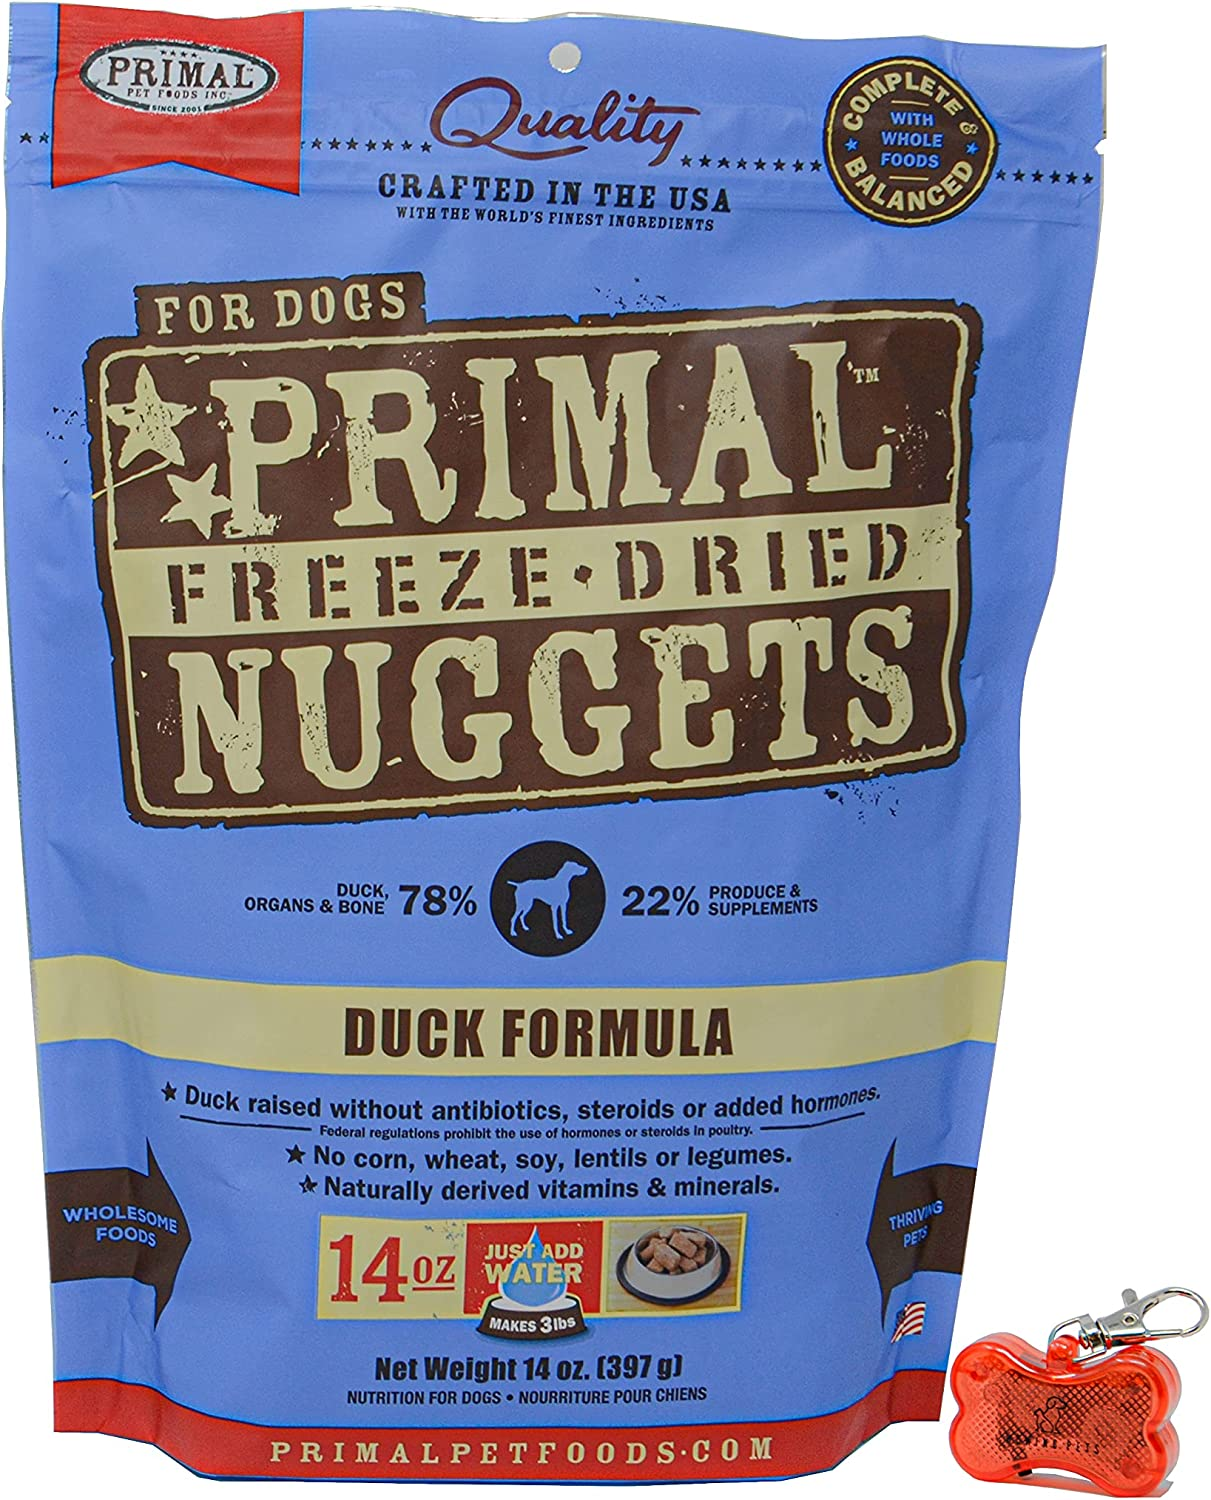 Primal Pet Food - Freeze Dried Duck Nuggets Dog Food 14oz Bag with WoWing Pets Pendant